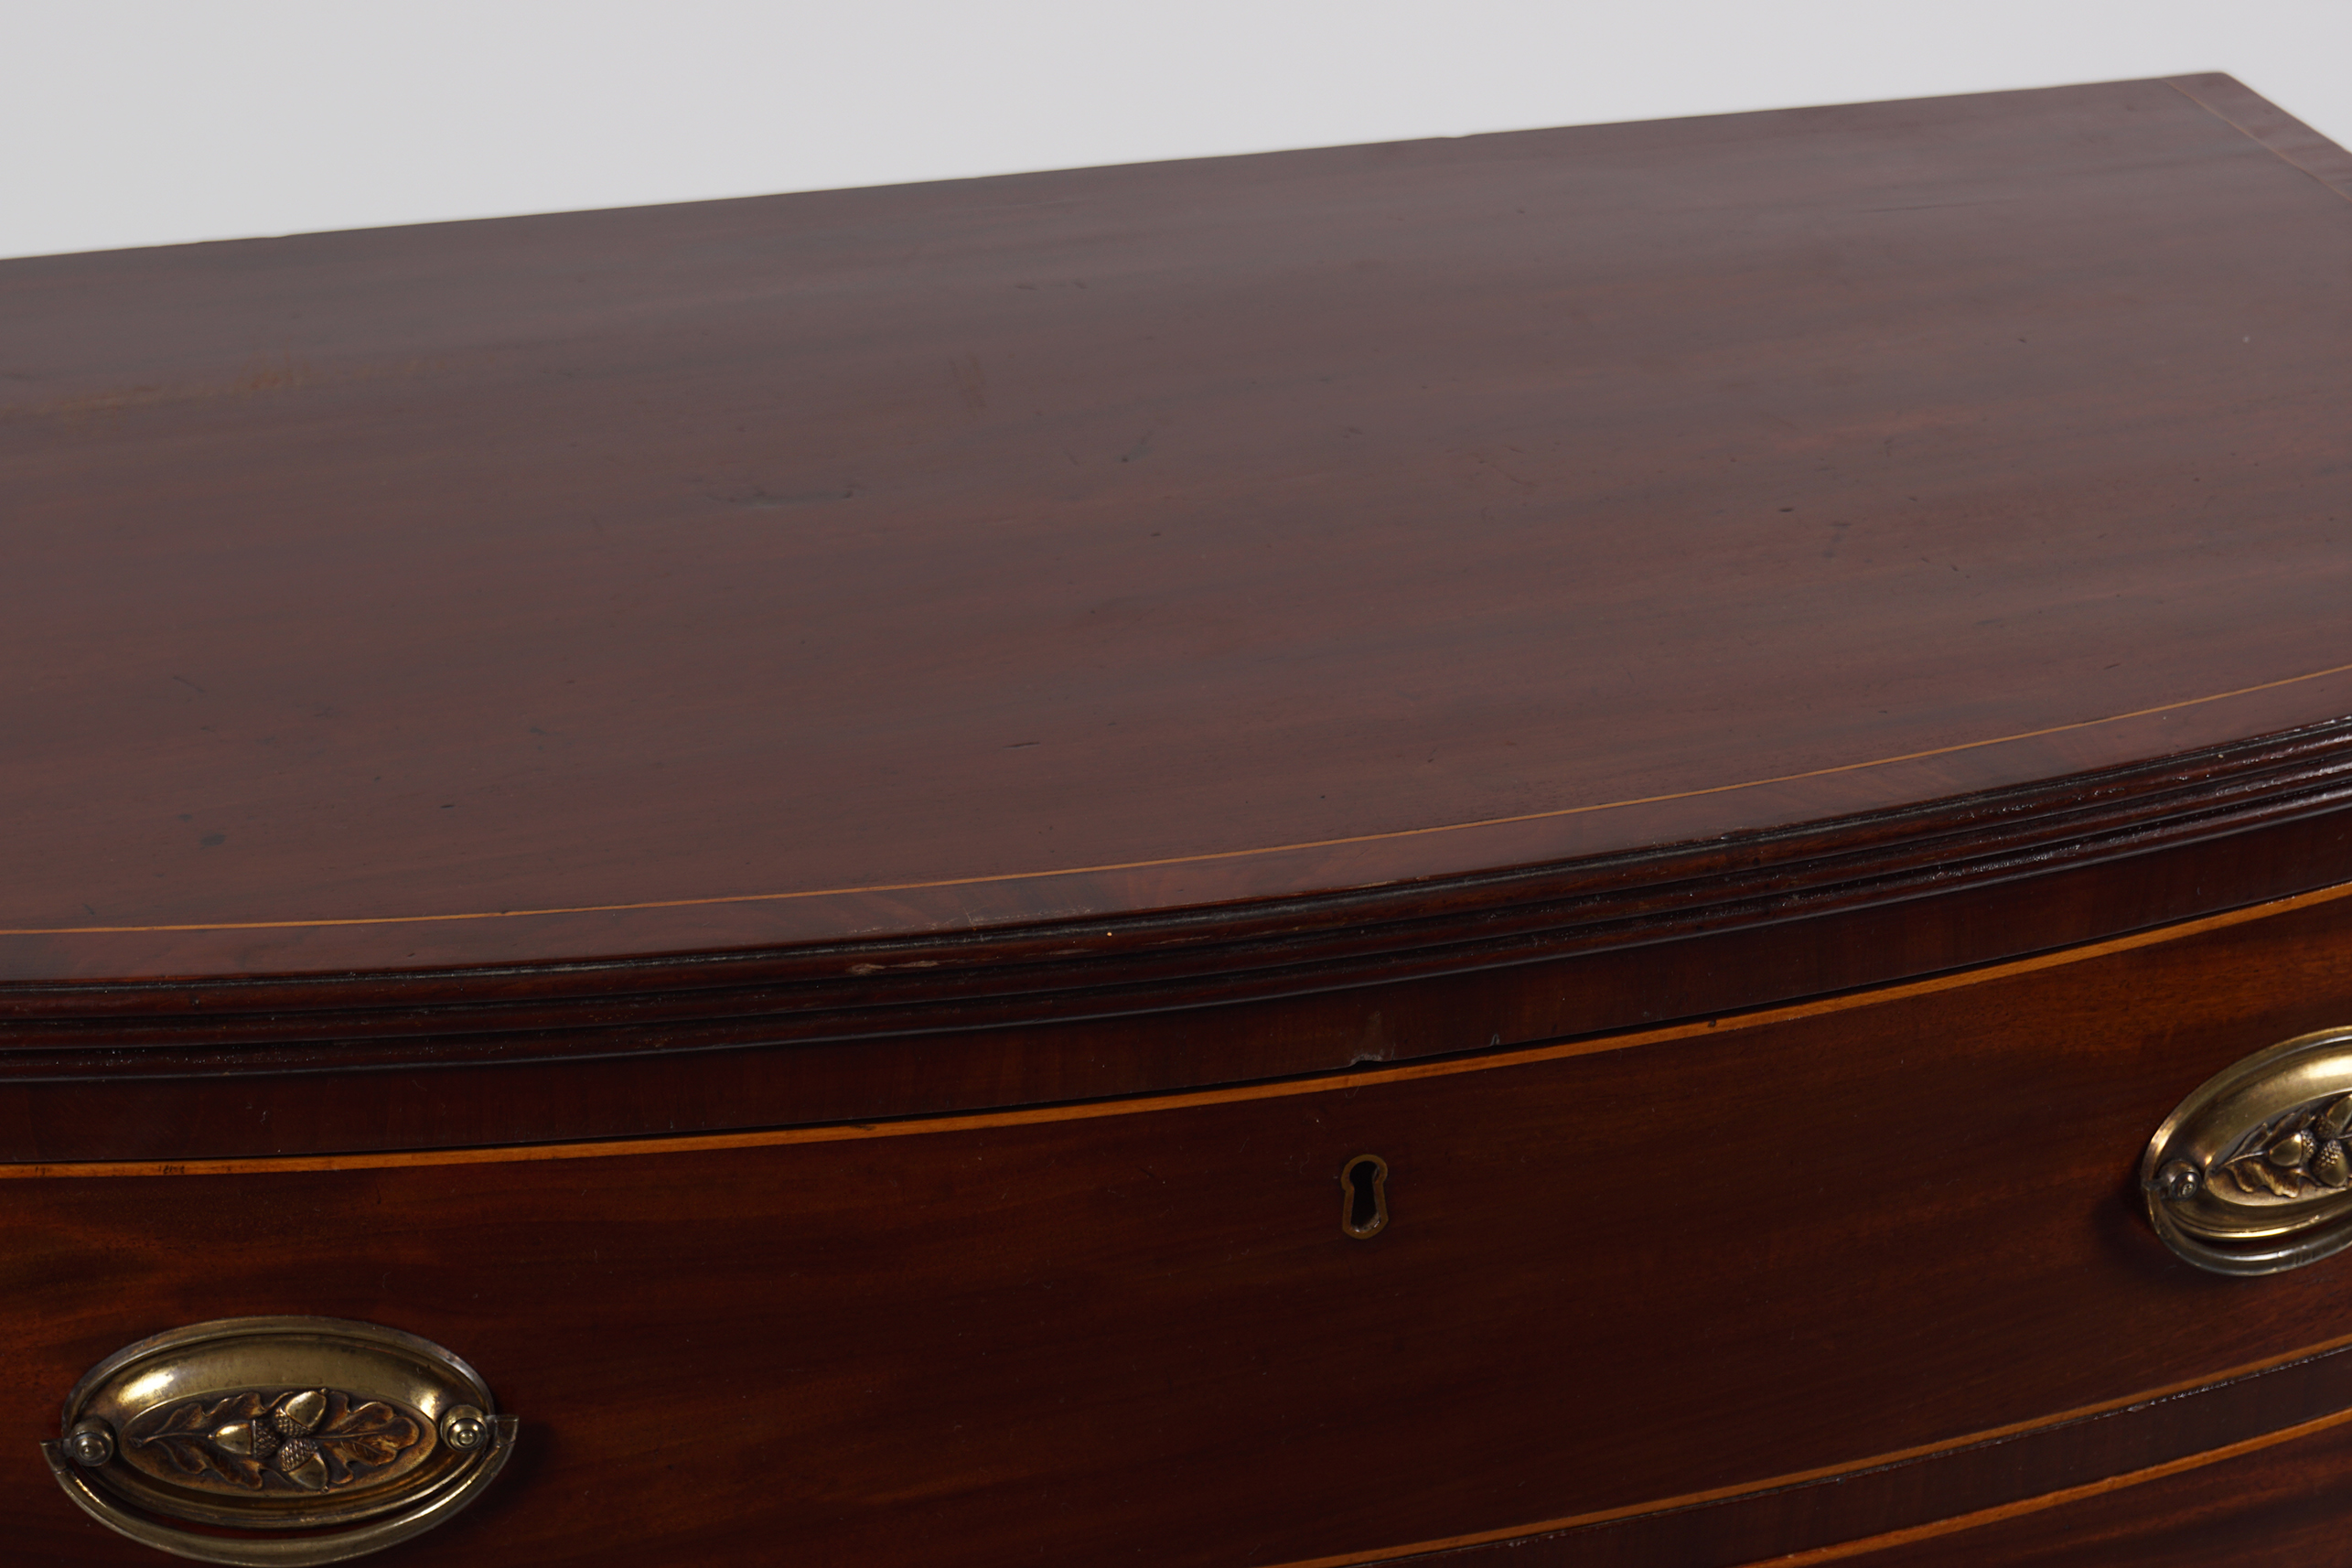 19TH-CENTURY MAHOGANY AND INLAID BOW FRONT CHEST - Image 3 of 3